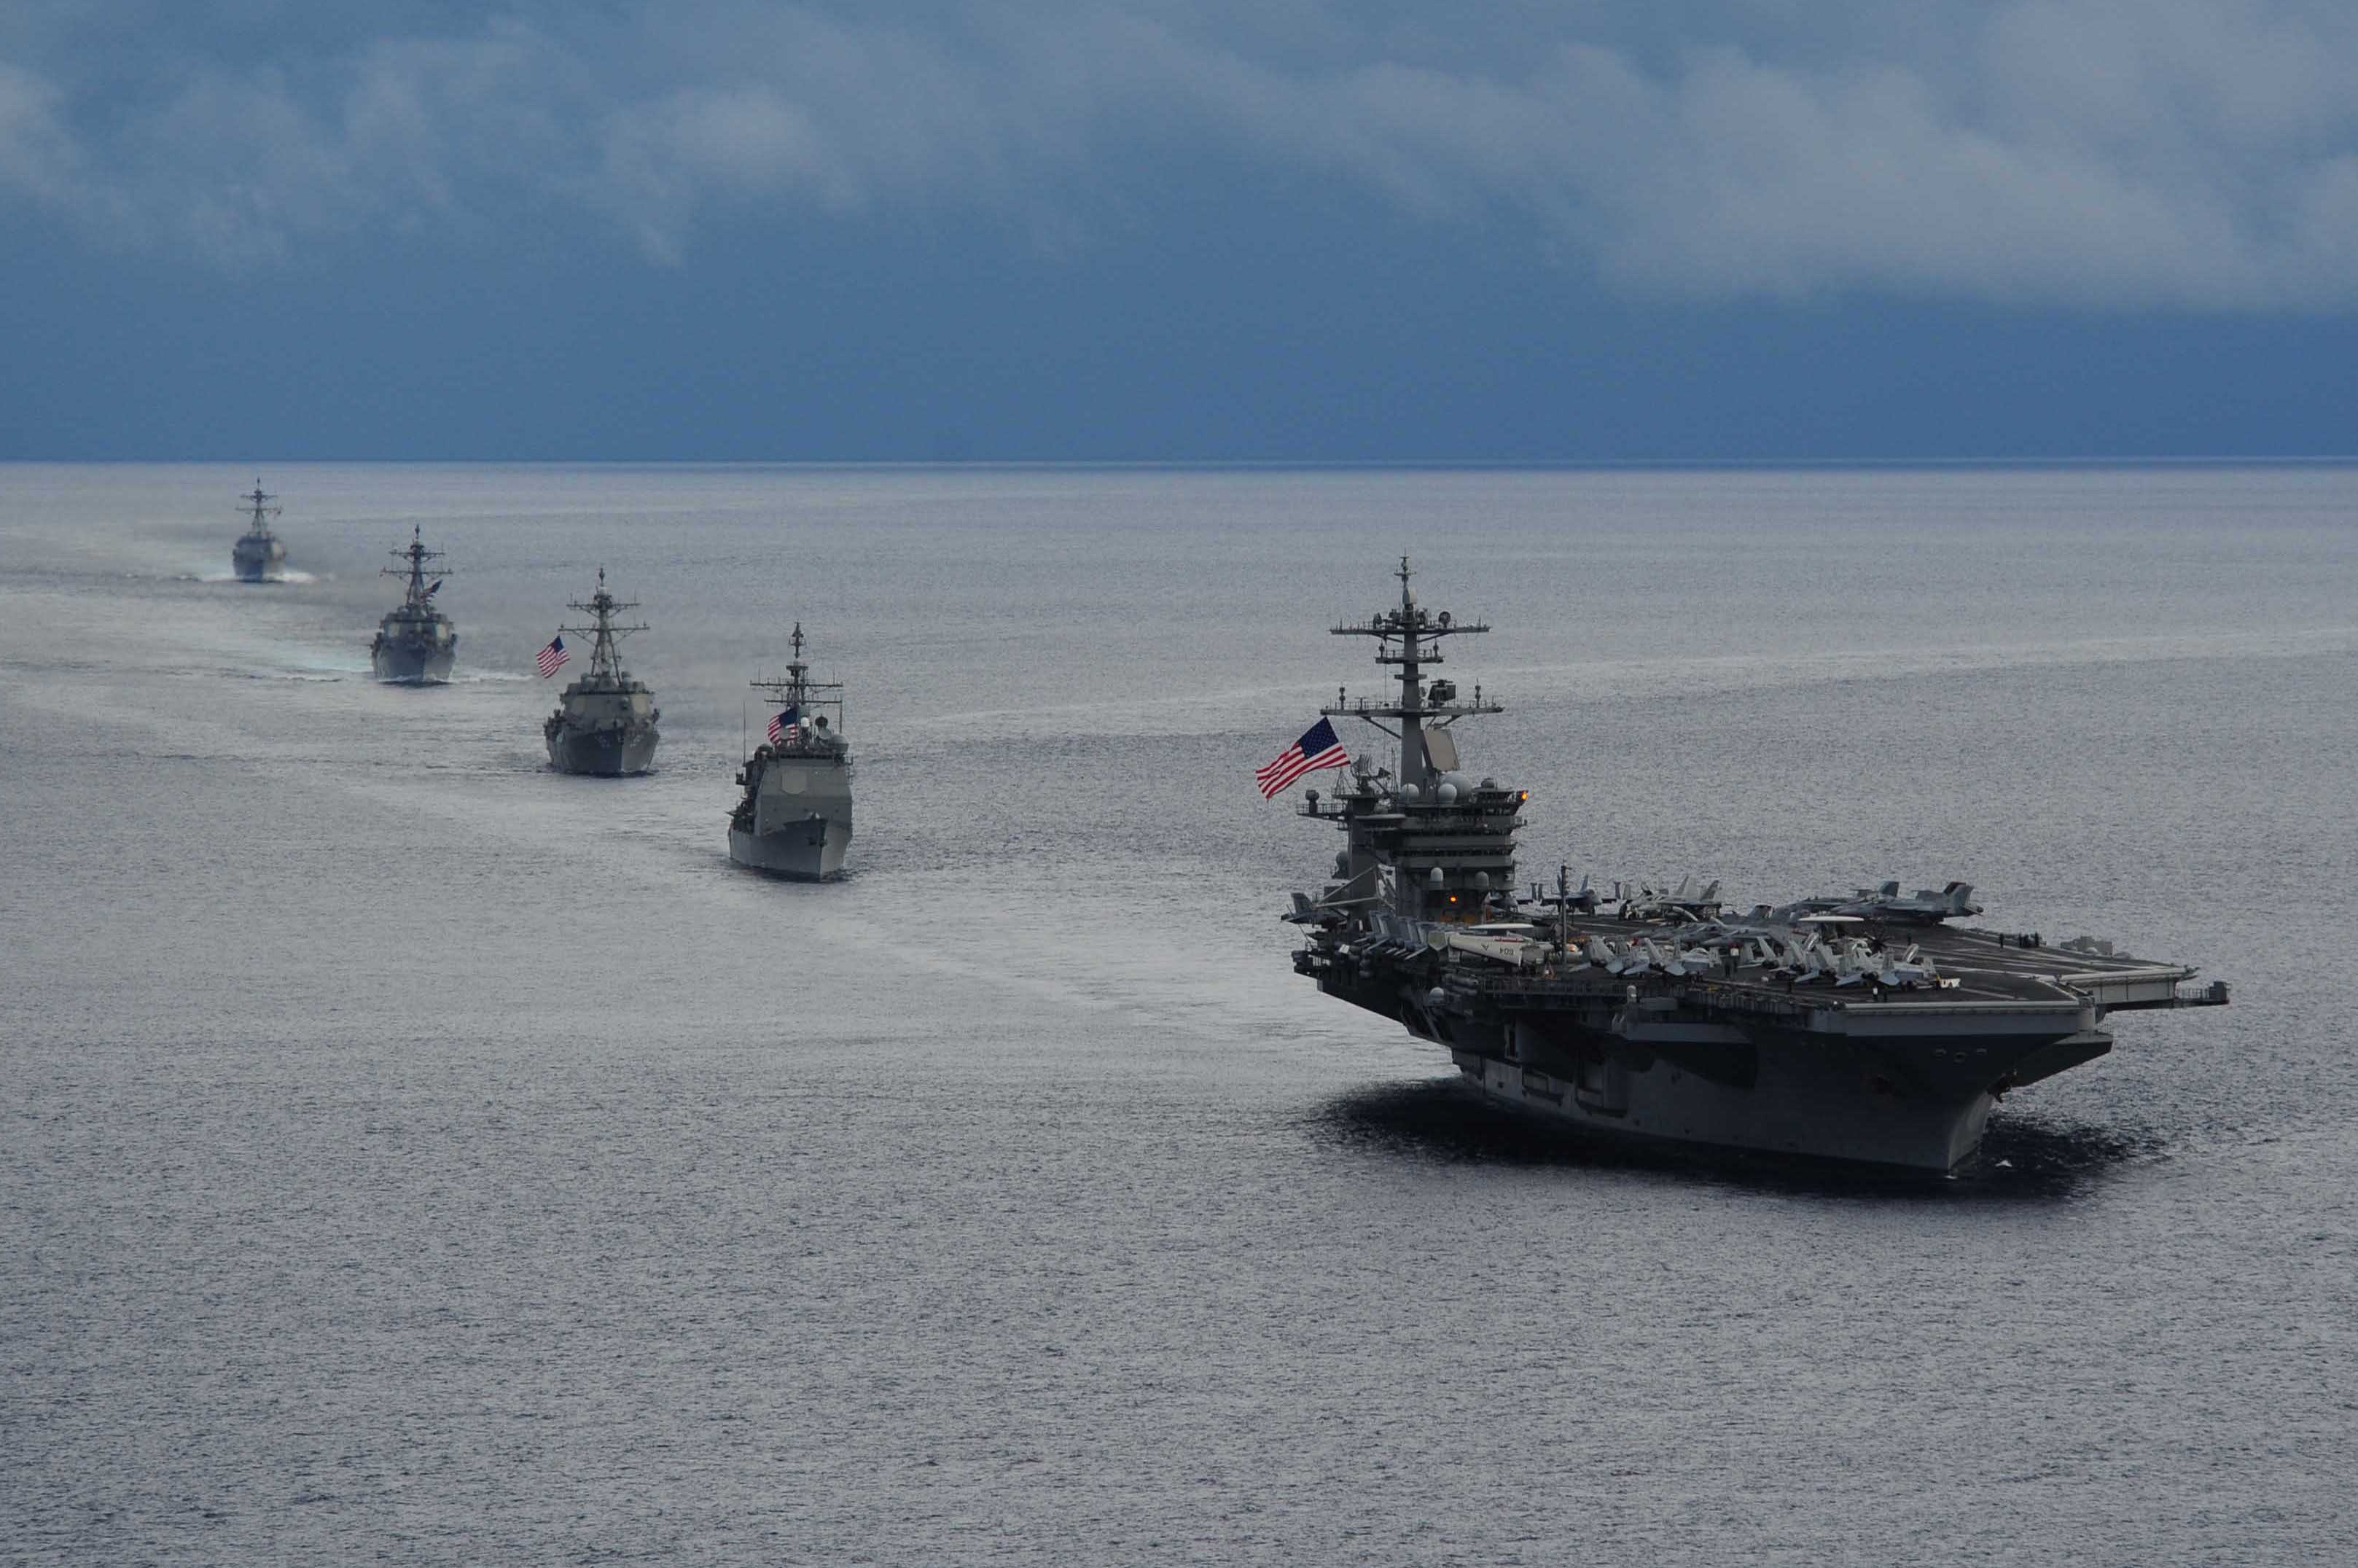 USS Theodore Roosevelt (CVN 71) leads a formation of ships from Carrier Strike Group (CSG) 12 during a maneuvering exercise on Sept. 23, 2014. US Navy Photo